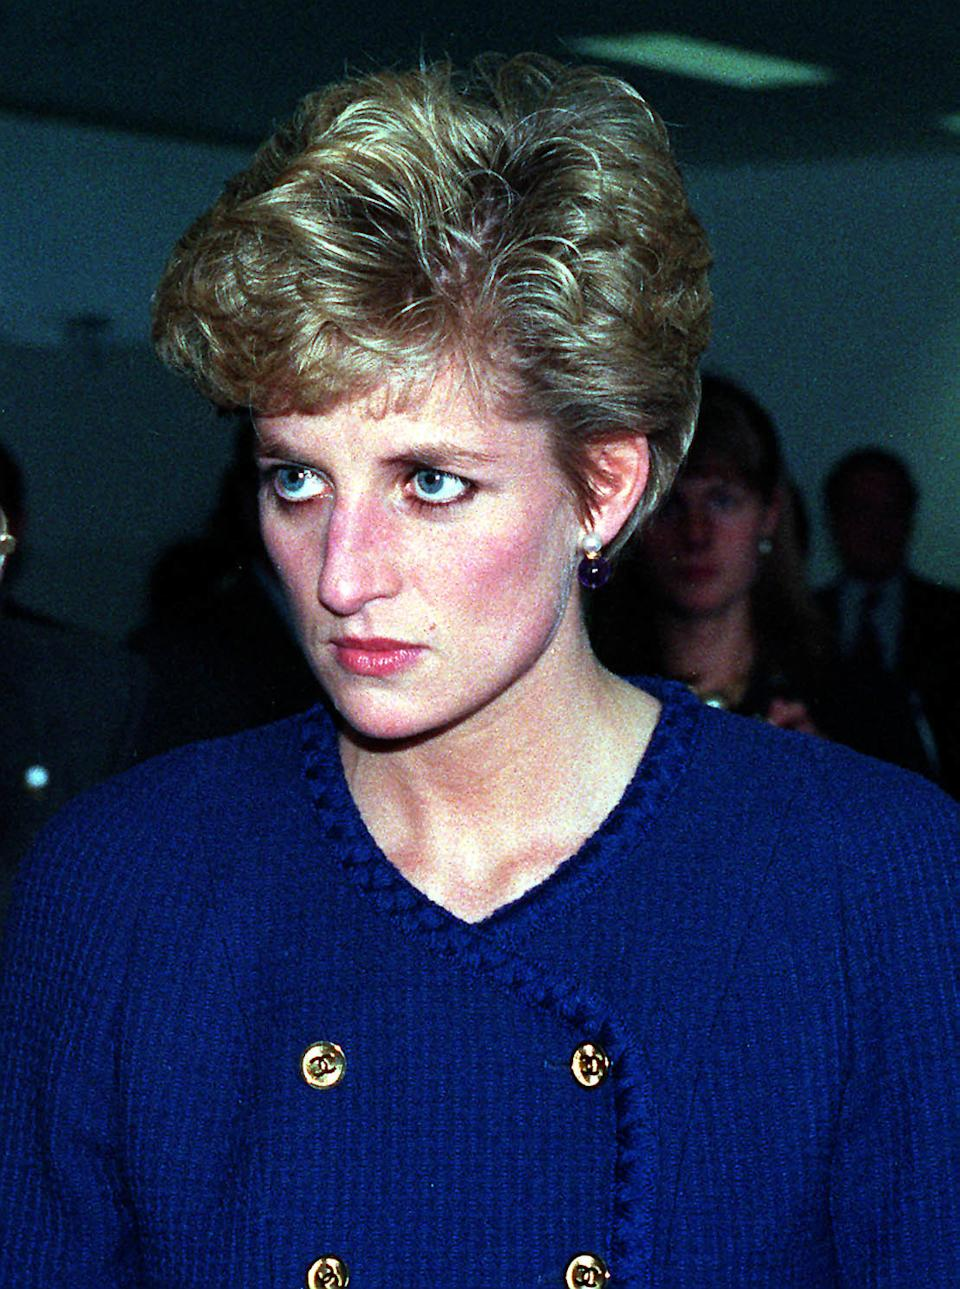 1992: The Princess of Wales during a visit to a factory in South Shields as the announcement of her marriage separation from the Prince of Wales was made by the Prime Minister, John Major, in the House of Commons.